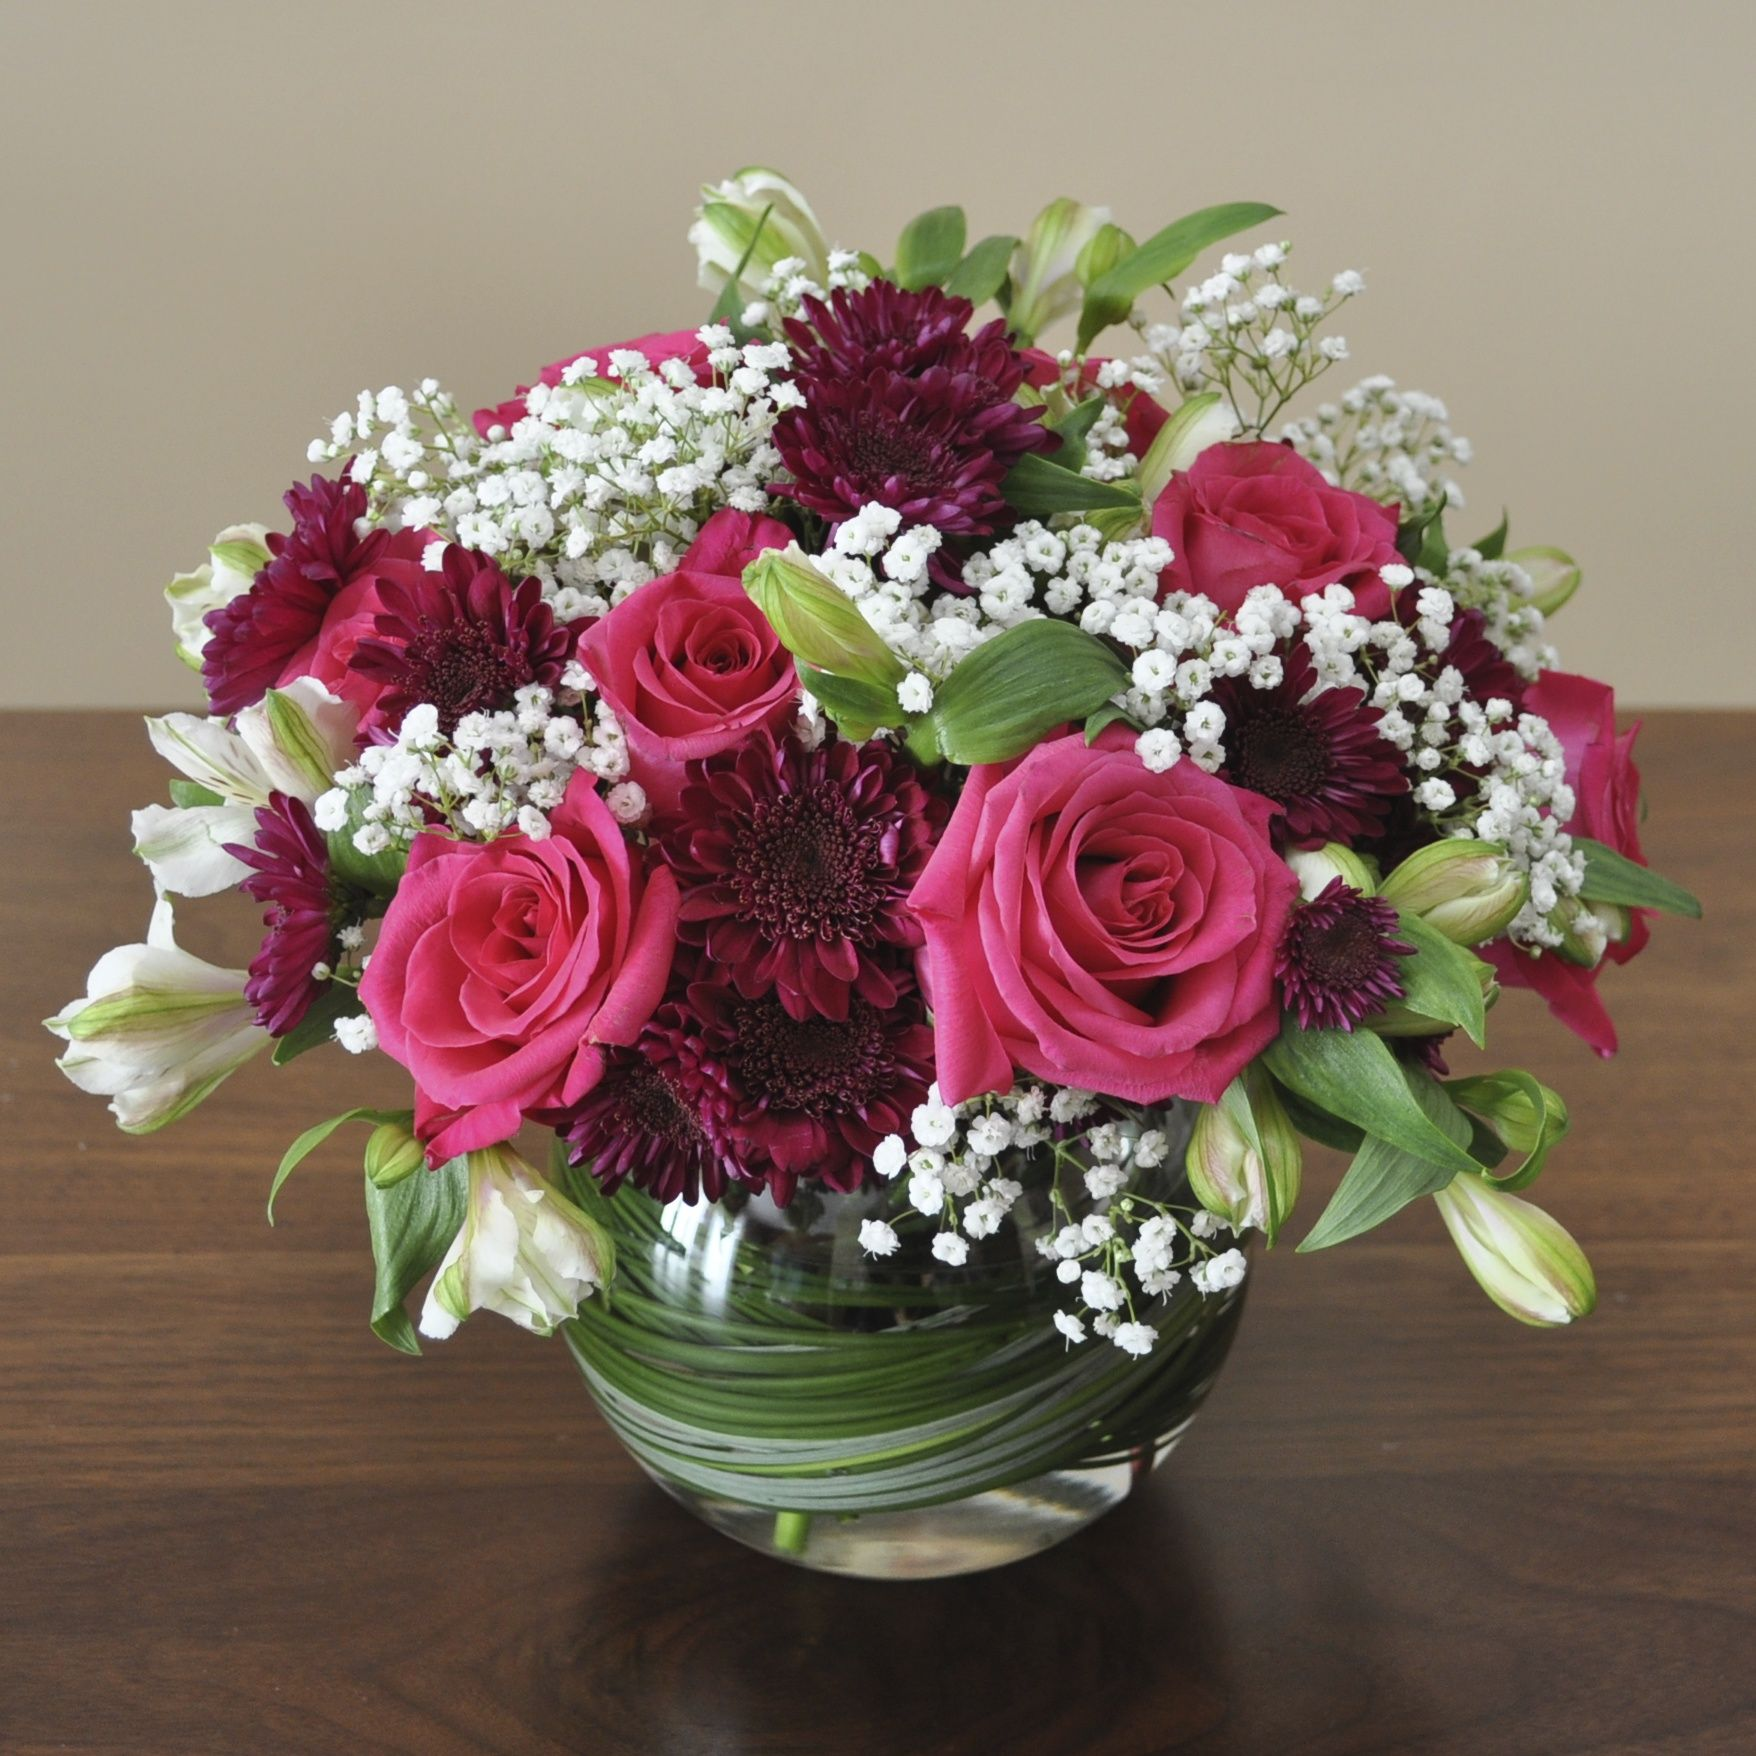 A Pretty Round Arrangement To Welcome A Baby Girl S Arrival Fresh Flowers Arrangements Rose Arrangements Floral Arrangements